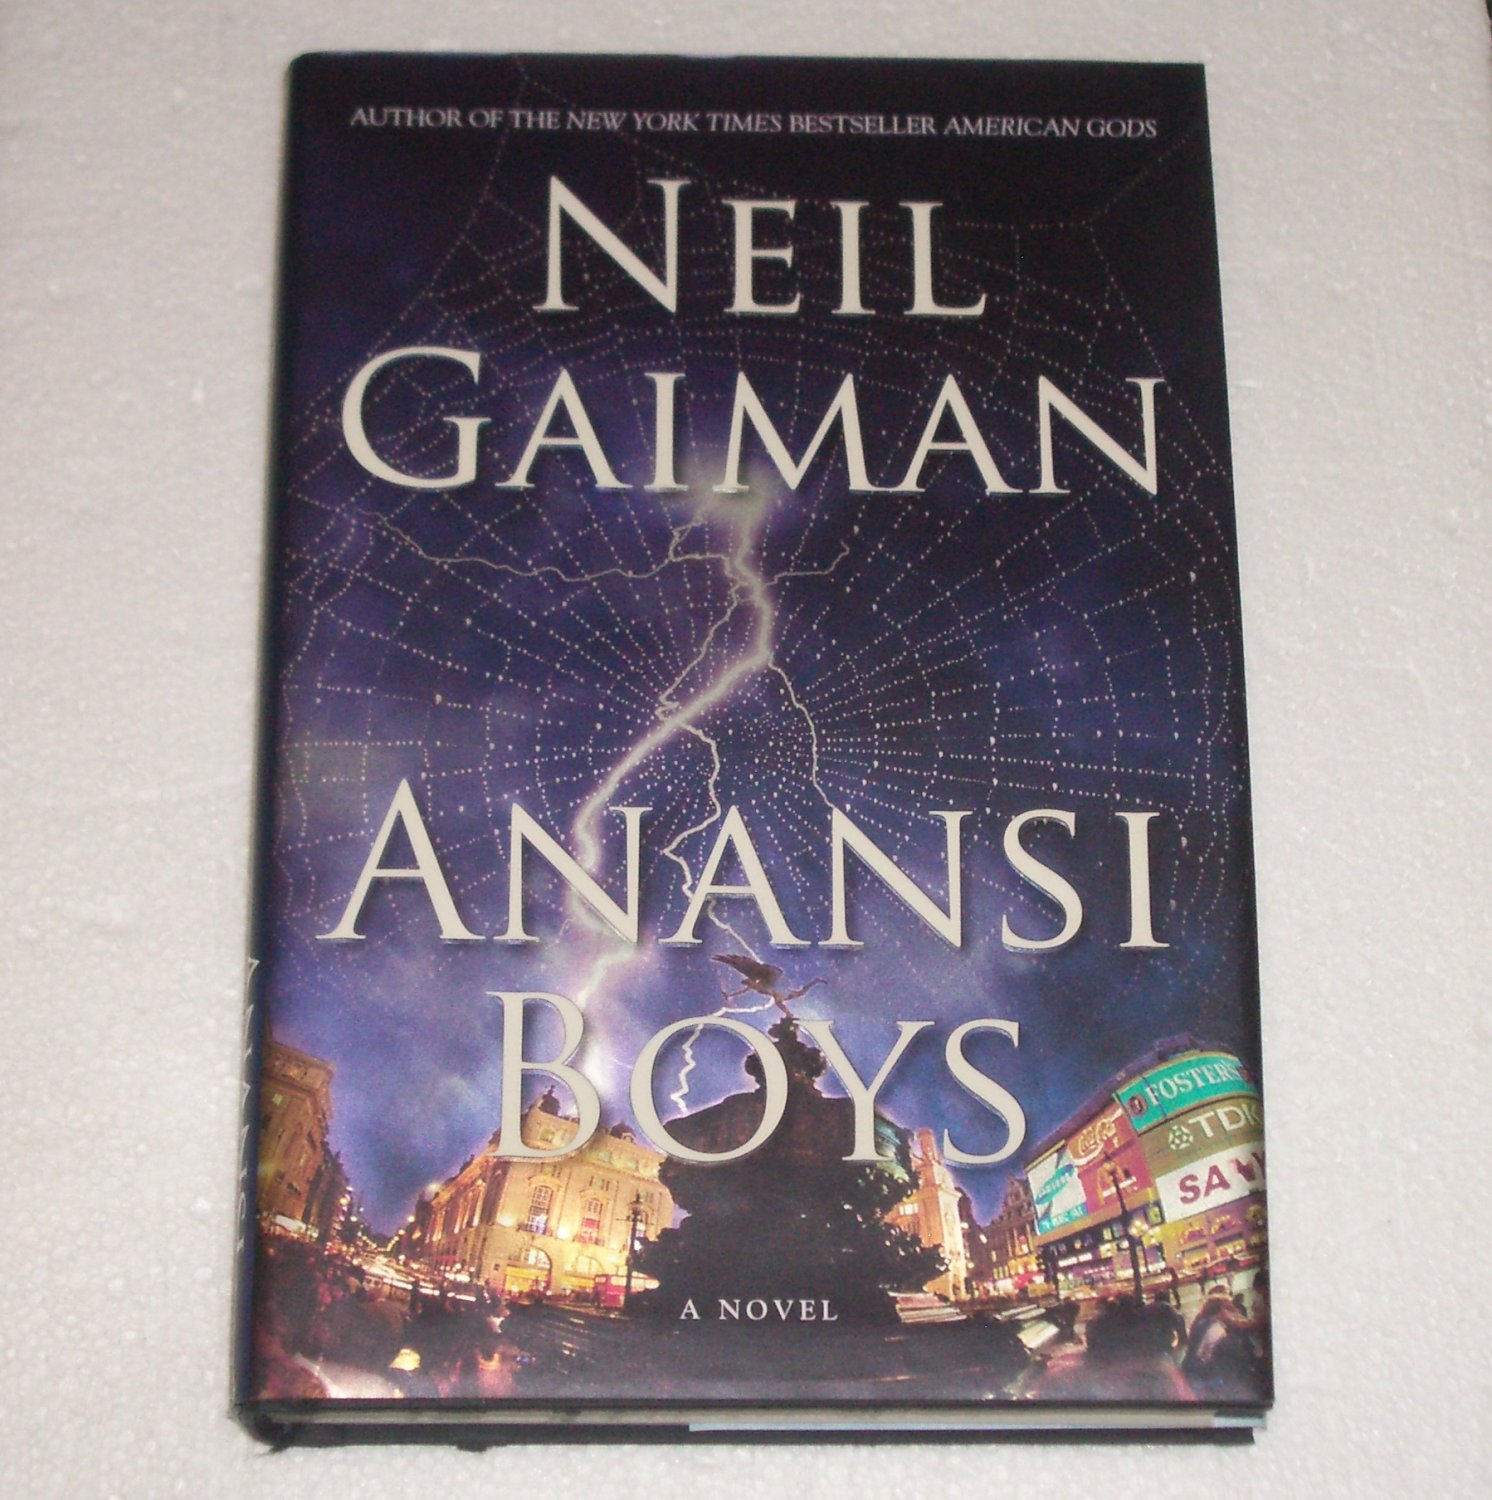 Anansi Boys by Neil Gaiman 2005 Hardcover with Dust Jacket. First Edition